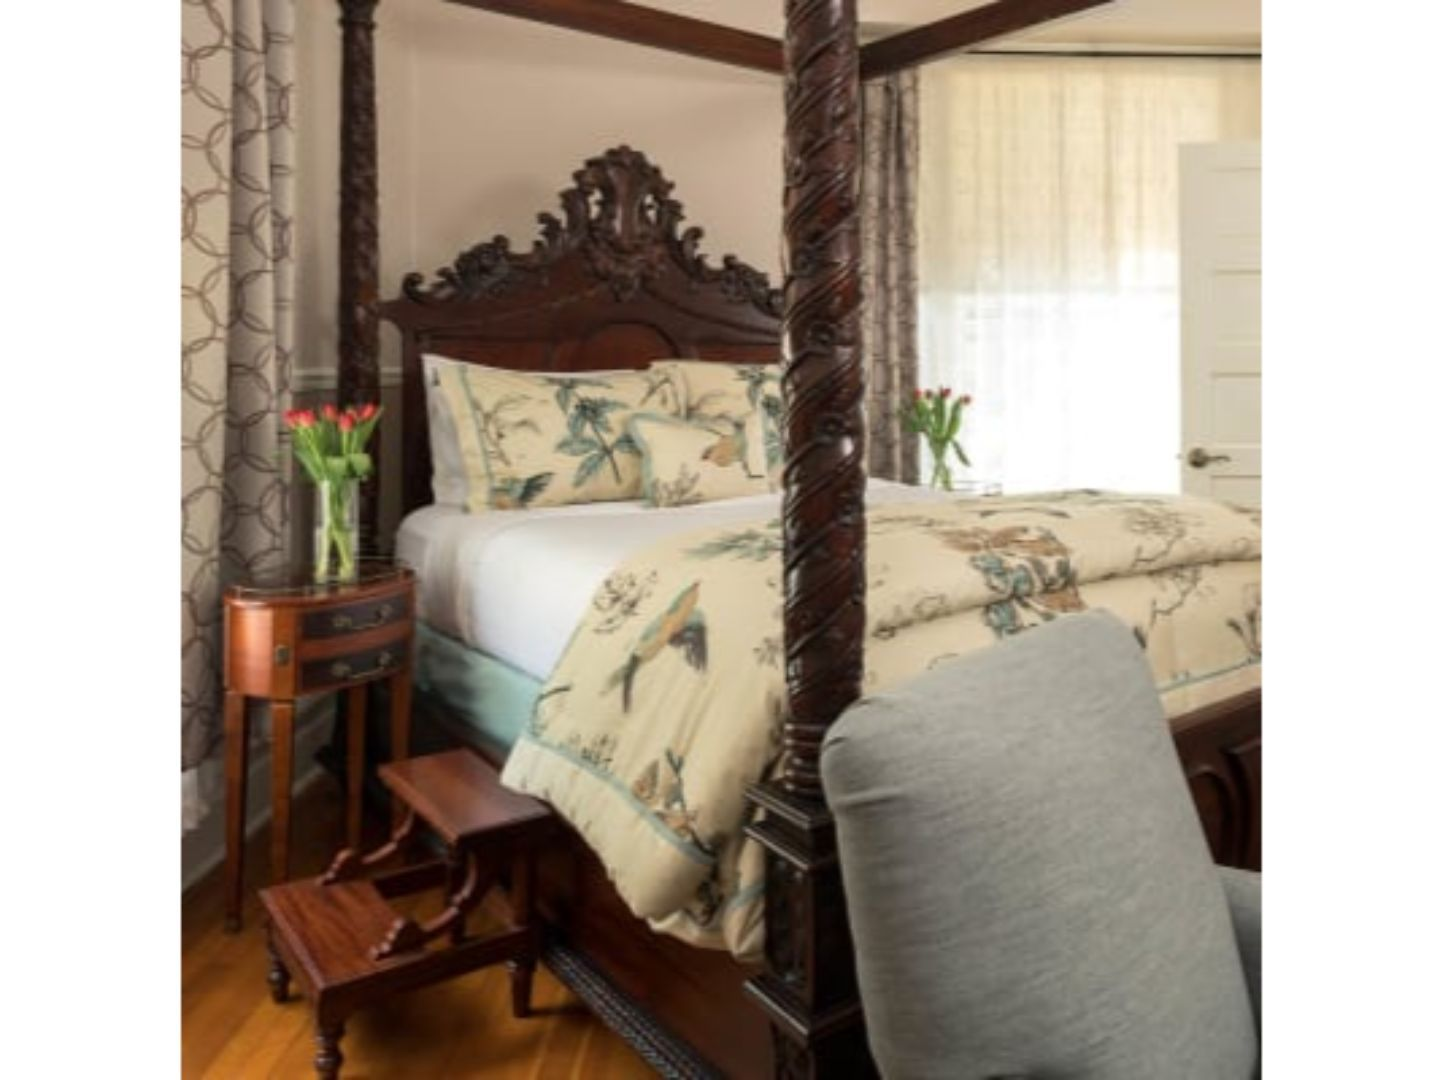 A bedroom with a bed and a chair in a room at Albemarle Inn.